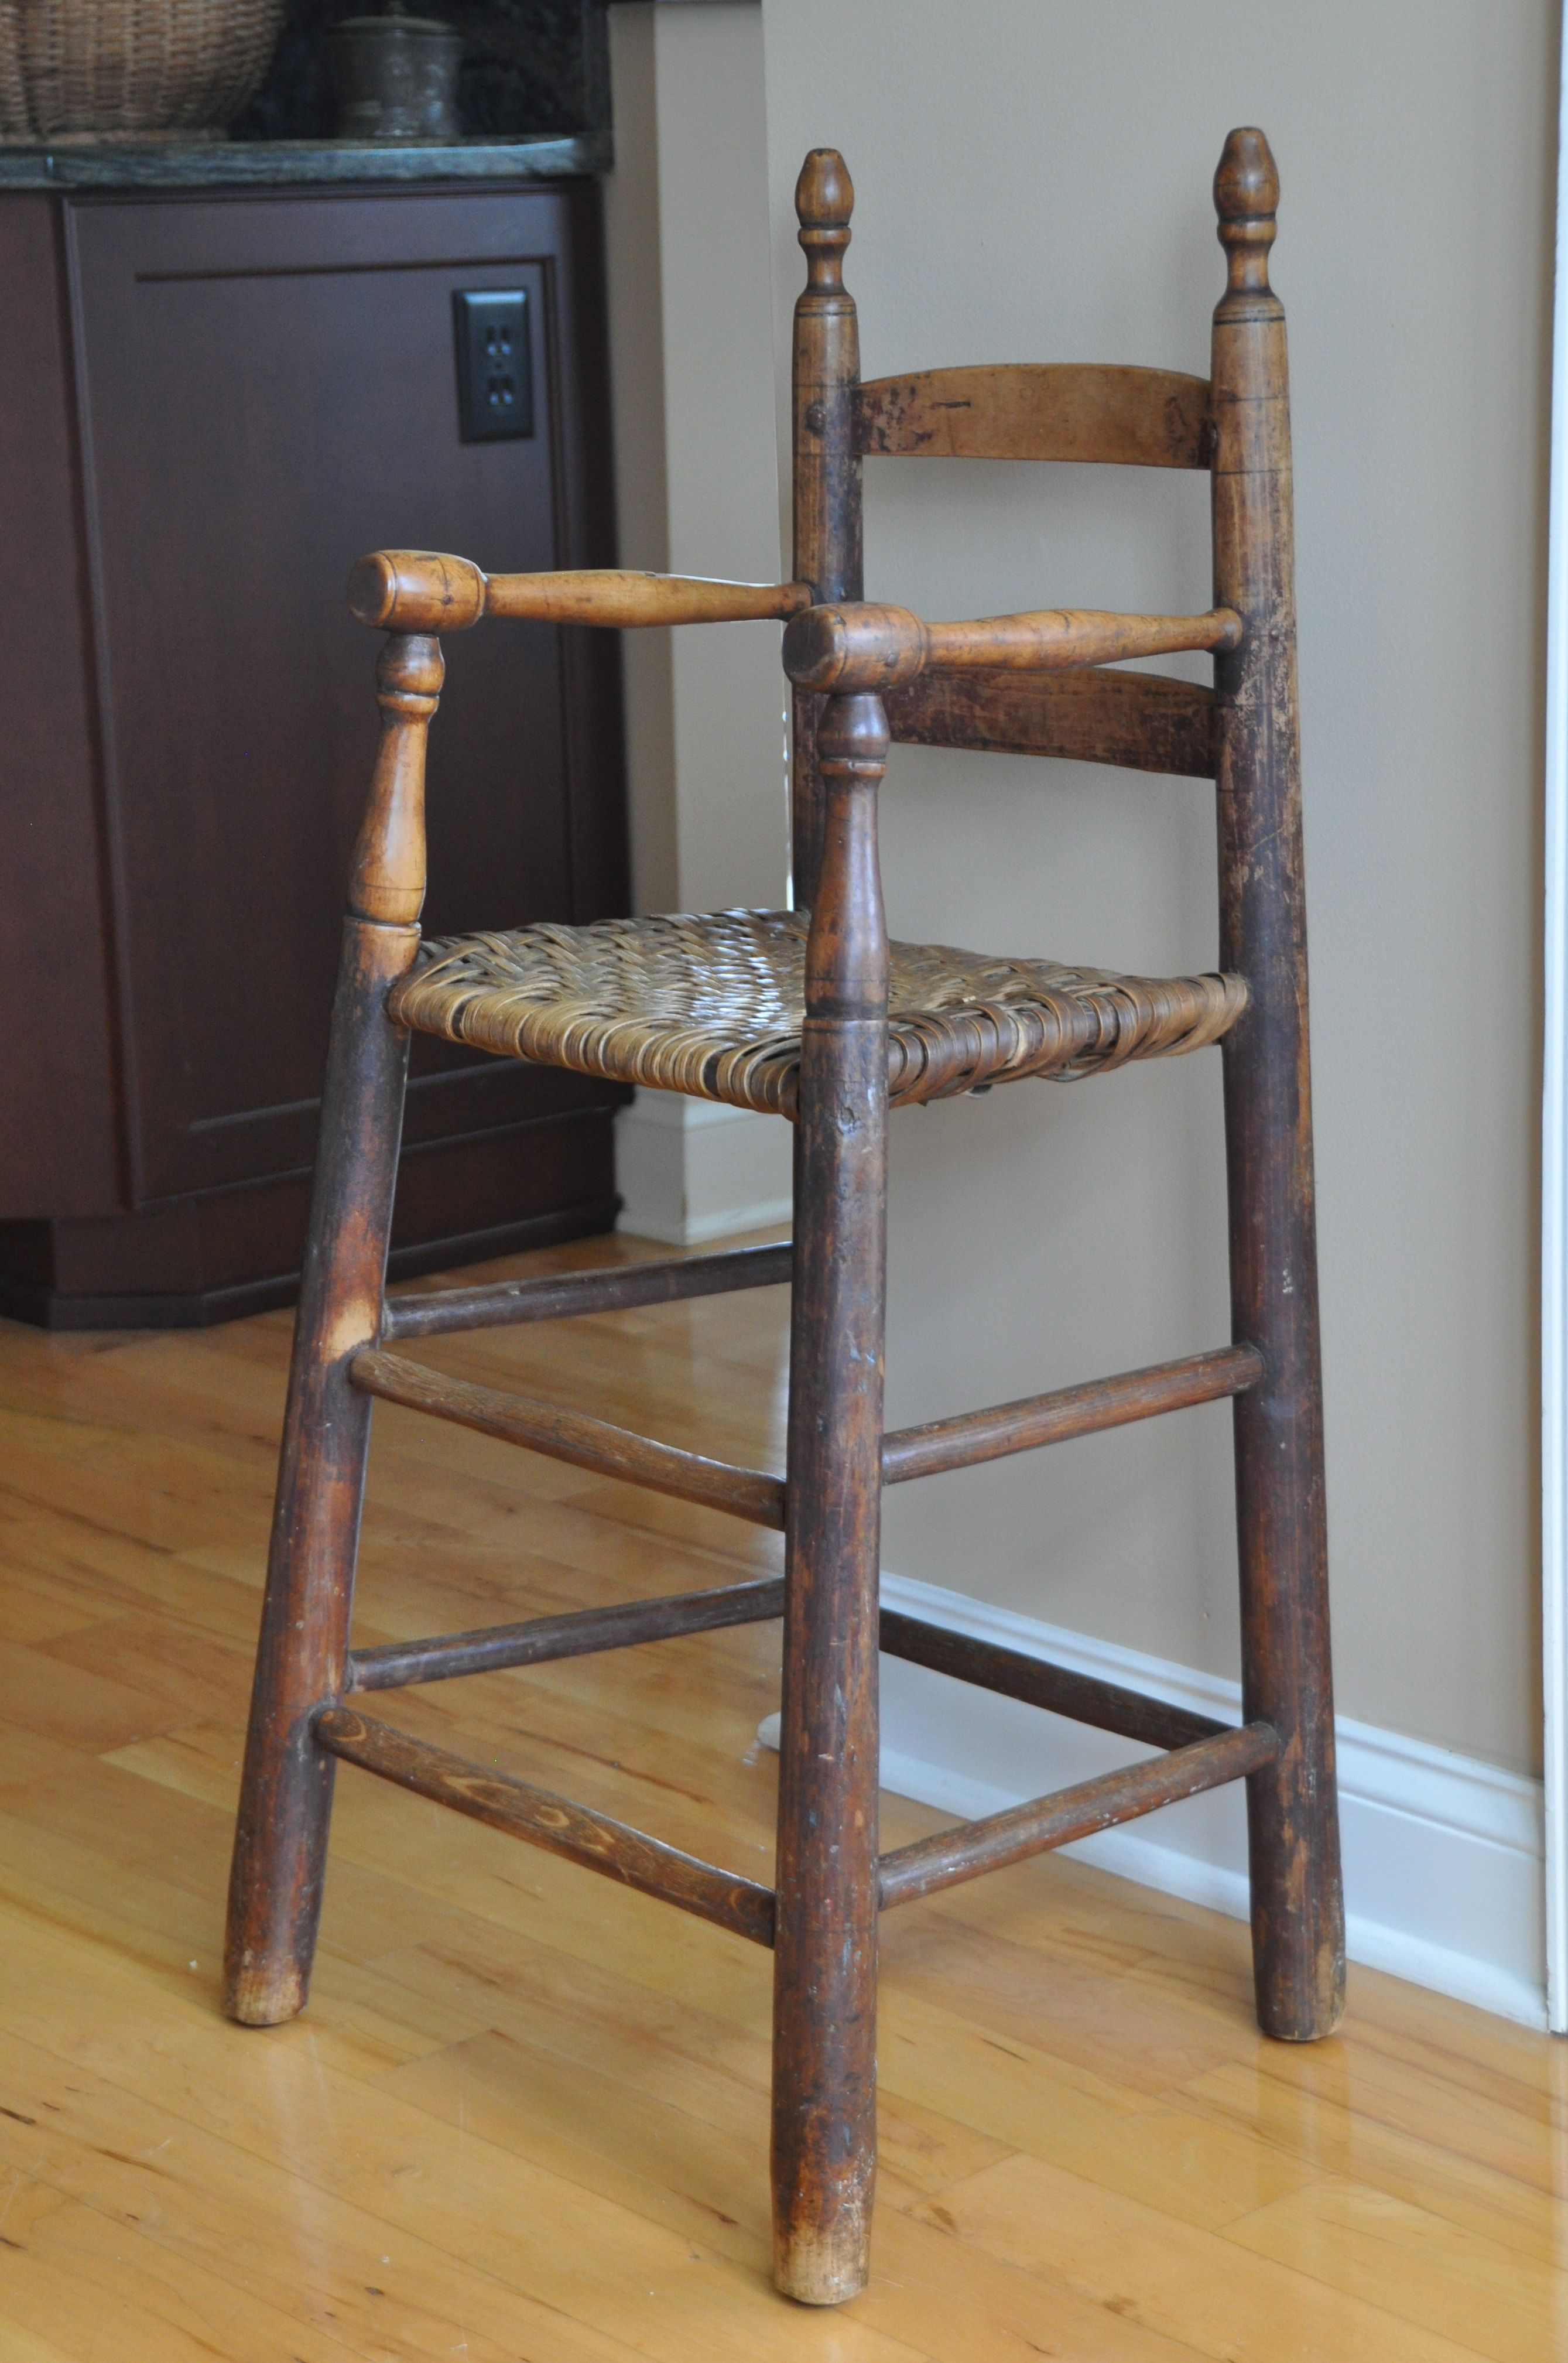 hester family high chair from person county nc late 18th century